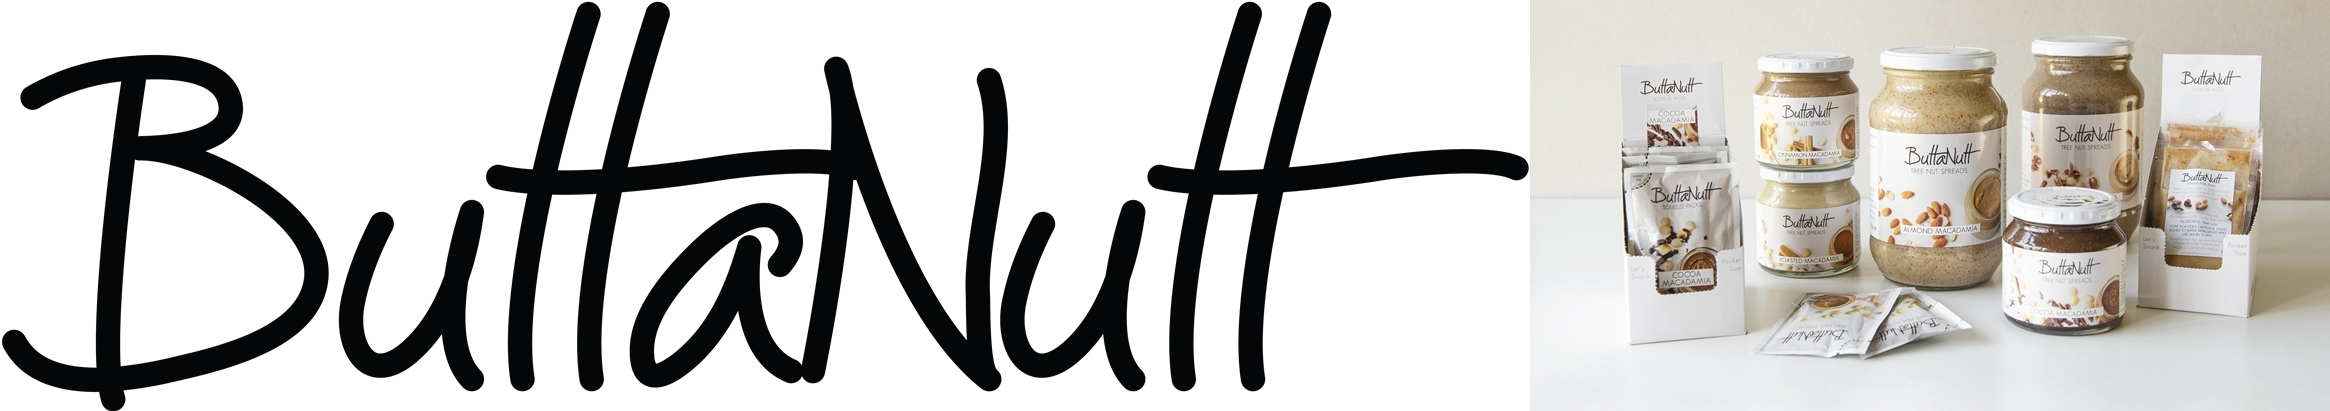 buttanutt-header-image-for-brand-page-3